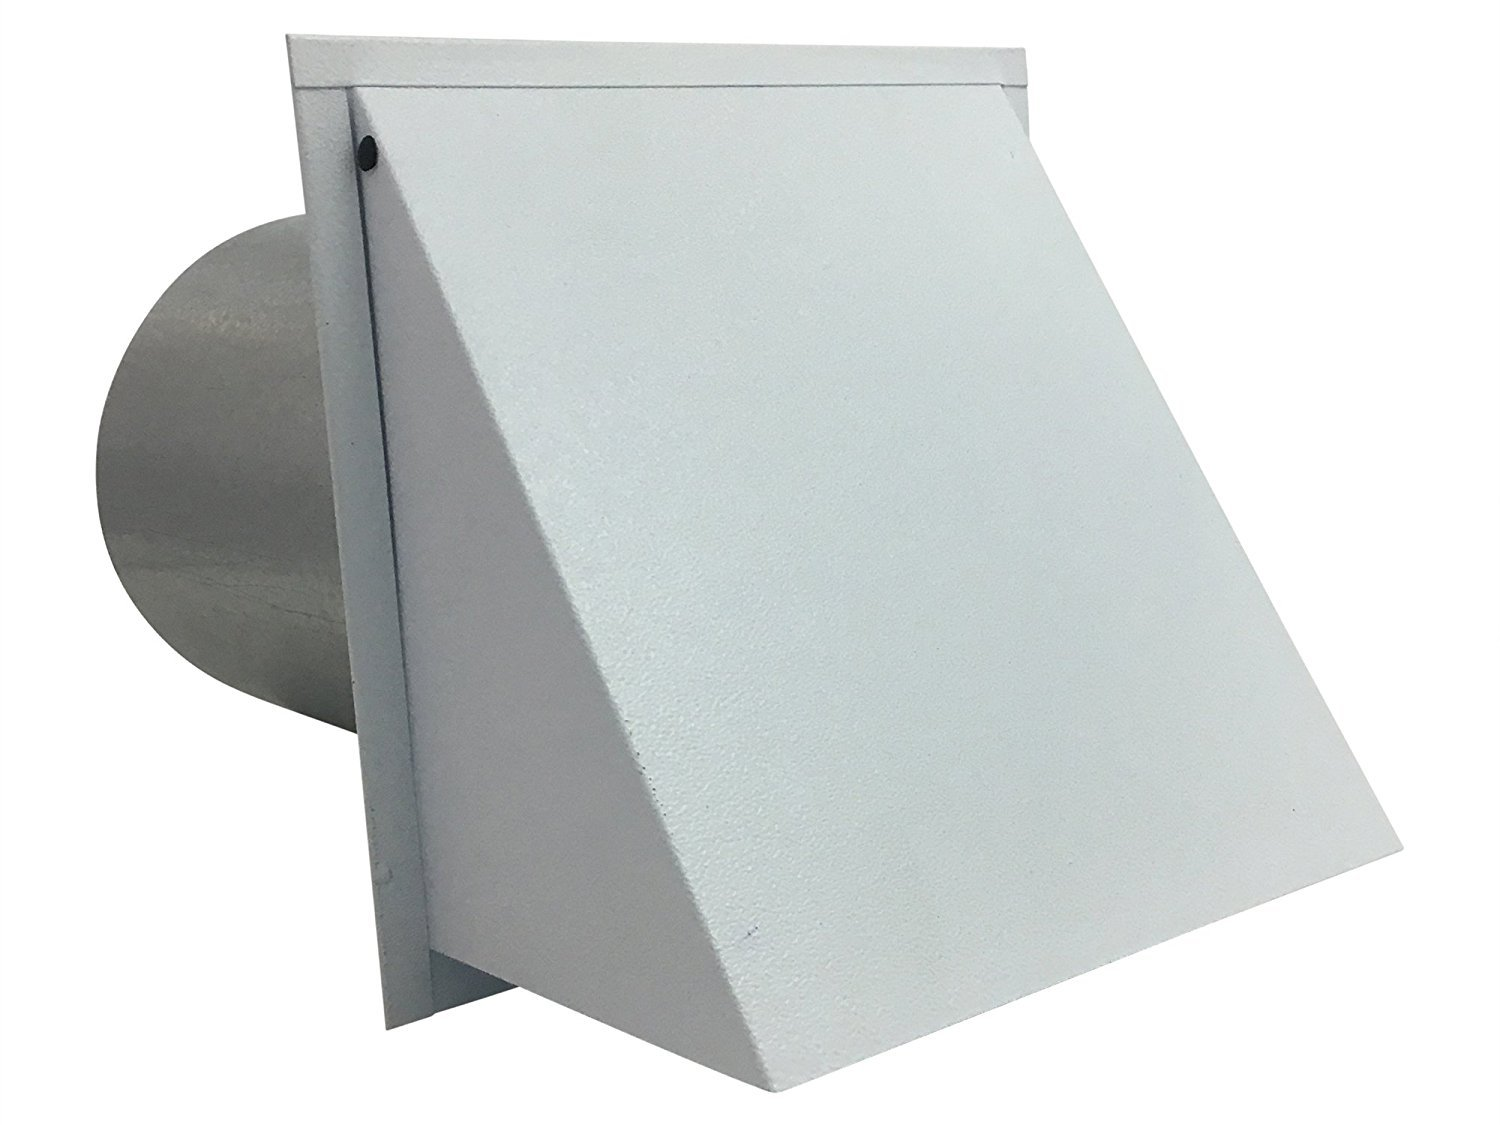 7 Inch Wall Vent Painted White Damper Only (7 Inch diameter) - Vent Works